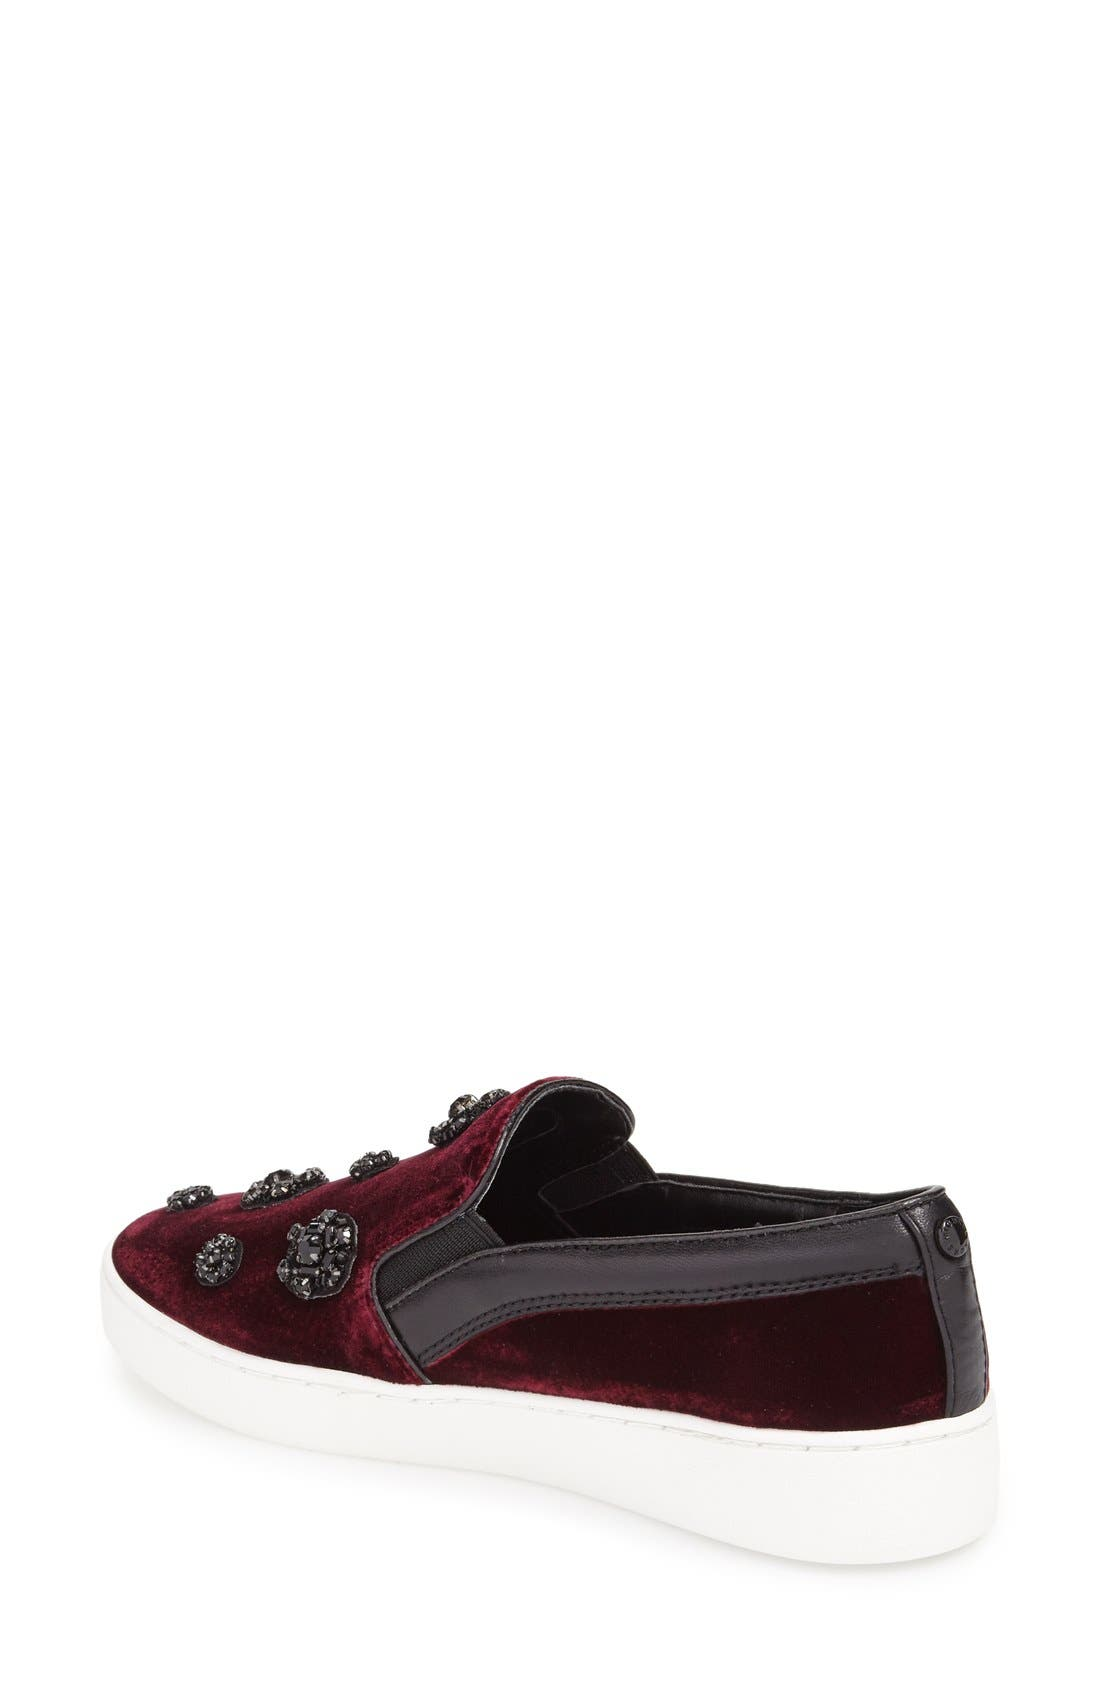 Keaton Slip-On Sneaker,                             Alternate thumbnail 85, color,